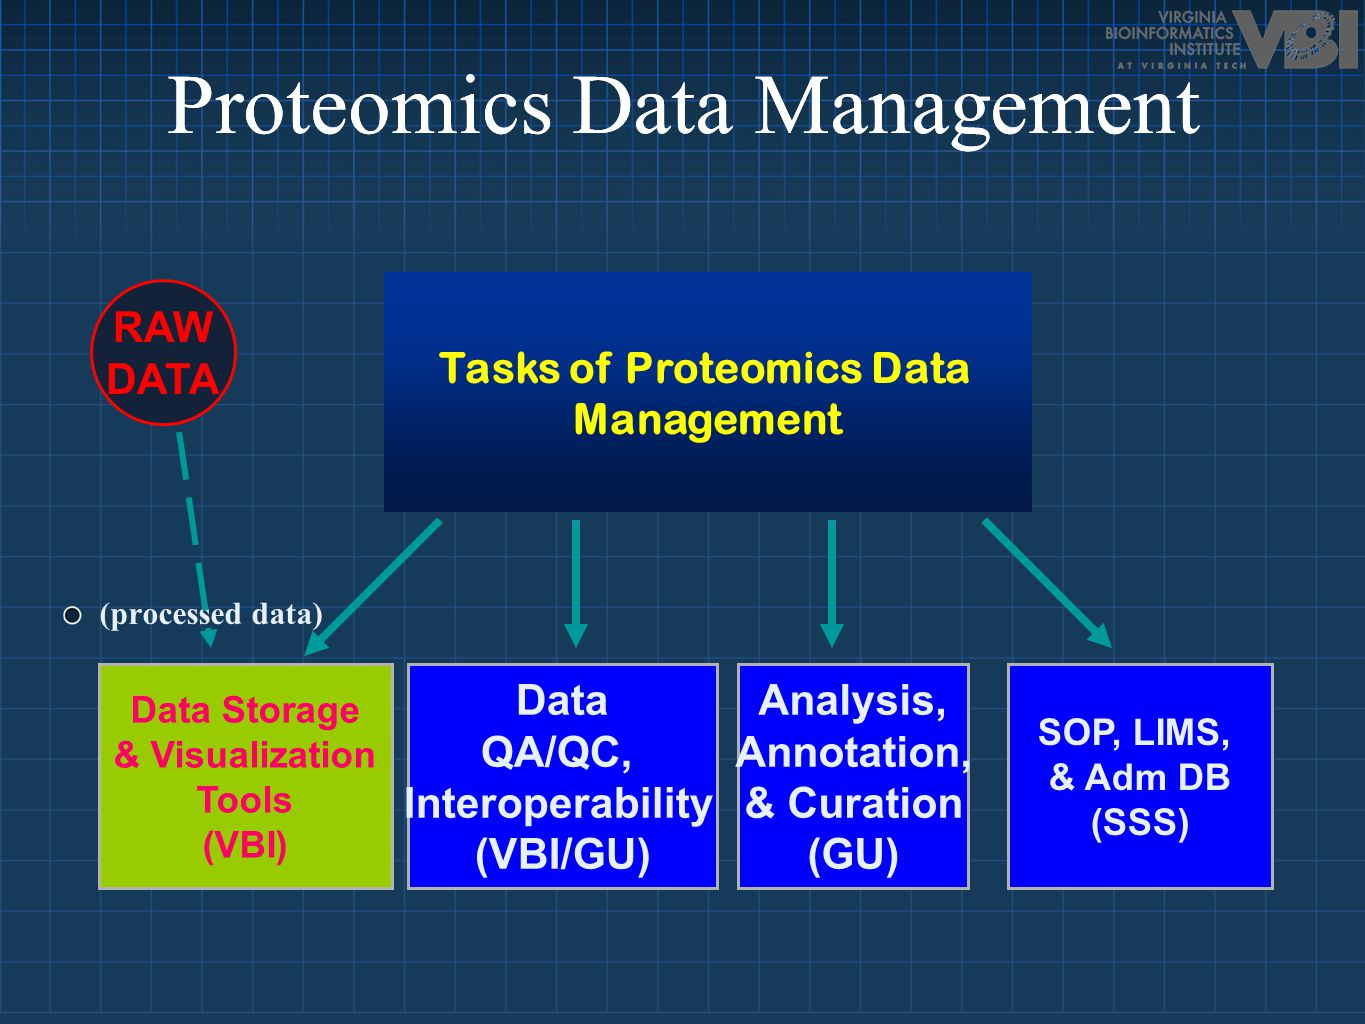 University of MichiganMicroarray and mass spectrometry CaprionMass spectrometry Harvard Proteomics InstituteGenomics and protein expression array Albert Einsten College of MedicineMass spectrometry PNNL Mass spectrometry Scripps NMR structural and X-ray crystal diffraction data Myriad GeneticsYeast two-hybrid system PRCs Major Data Type Organization Major Data Type